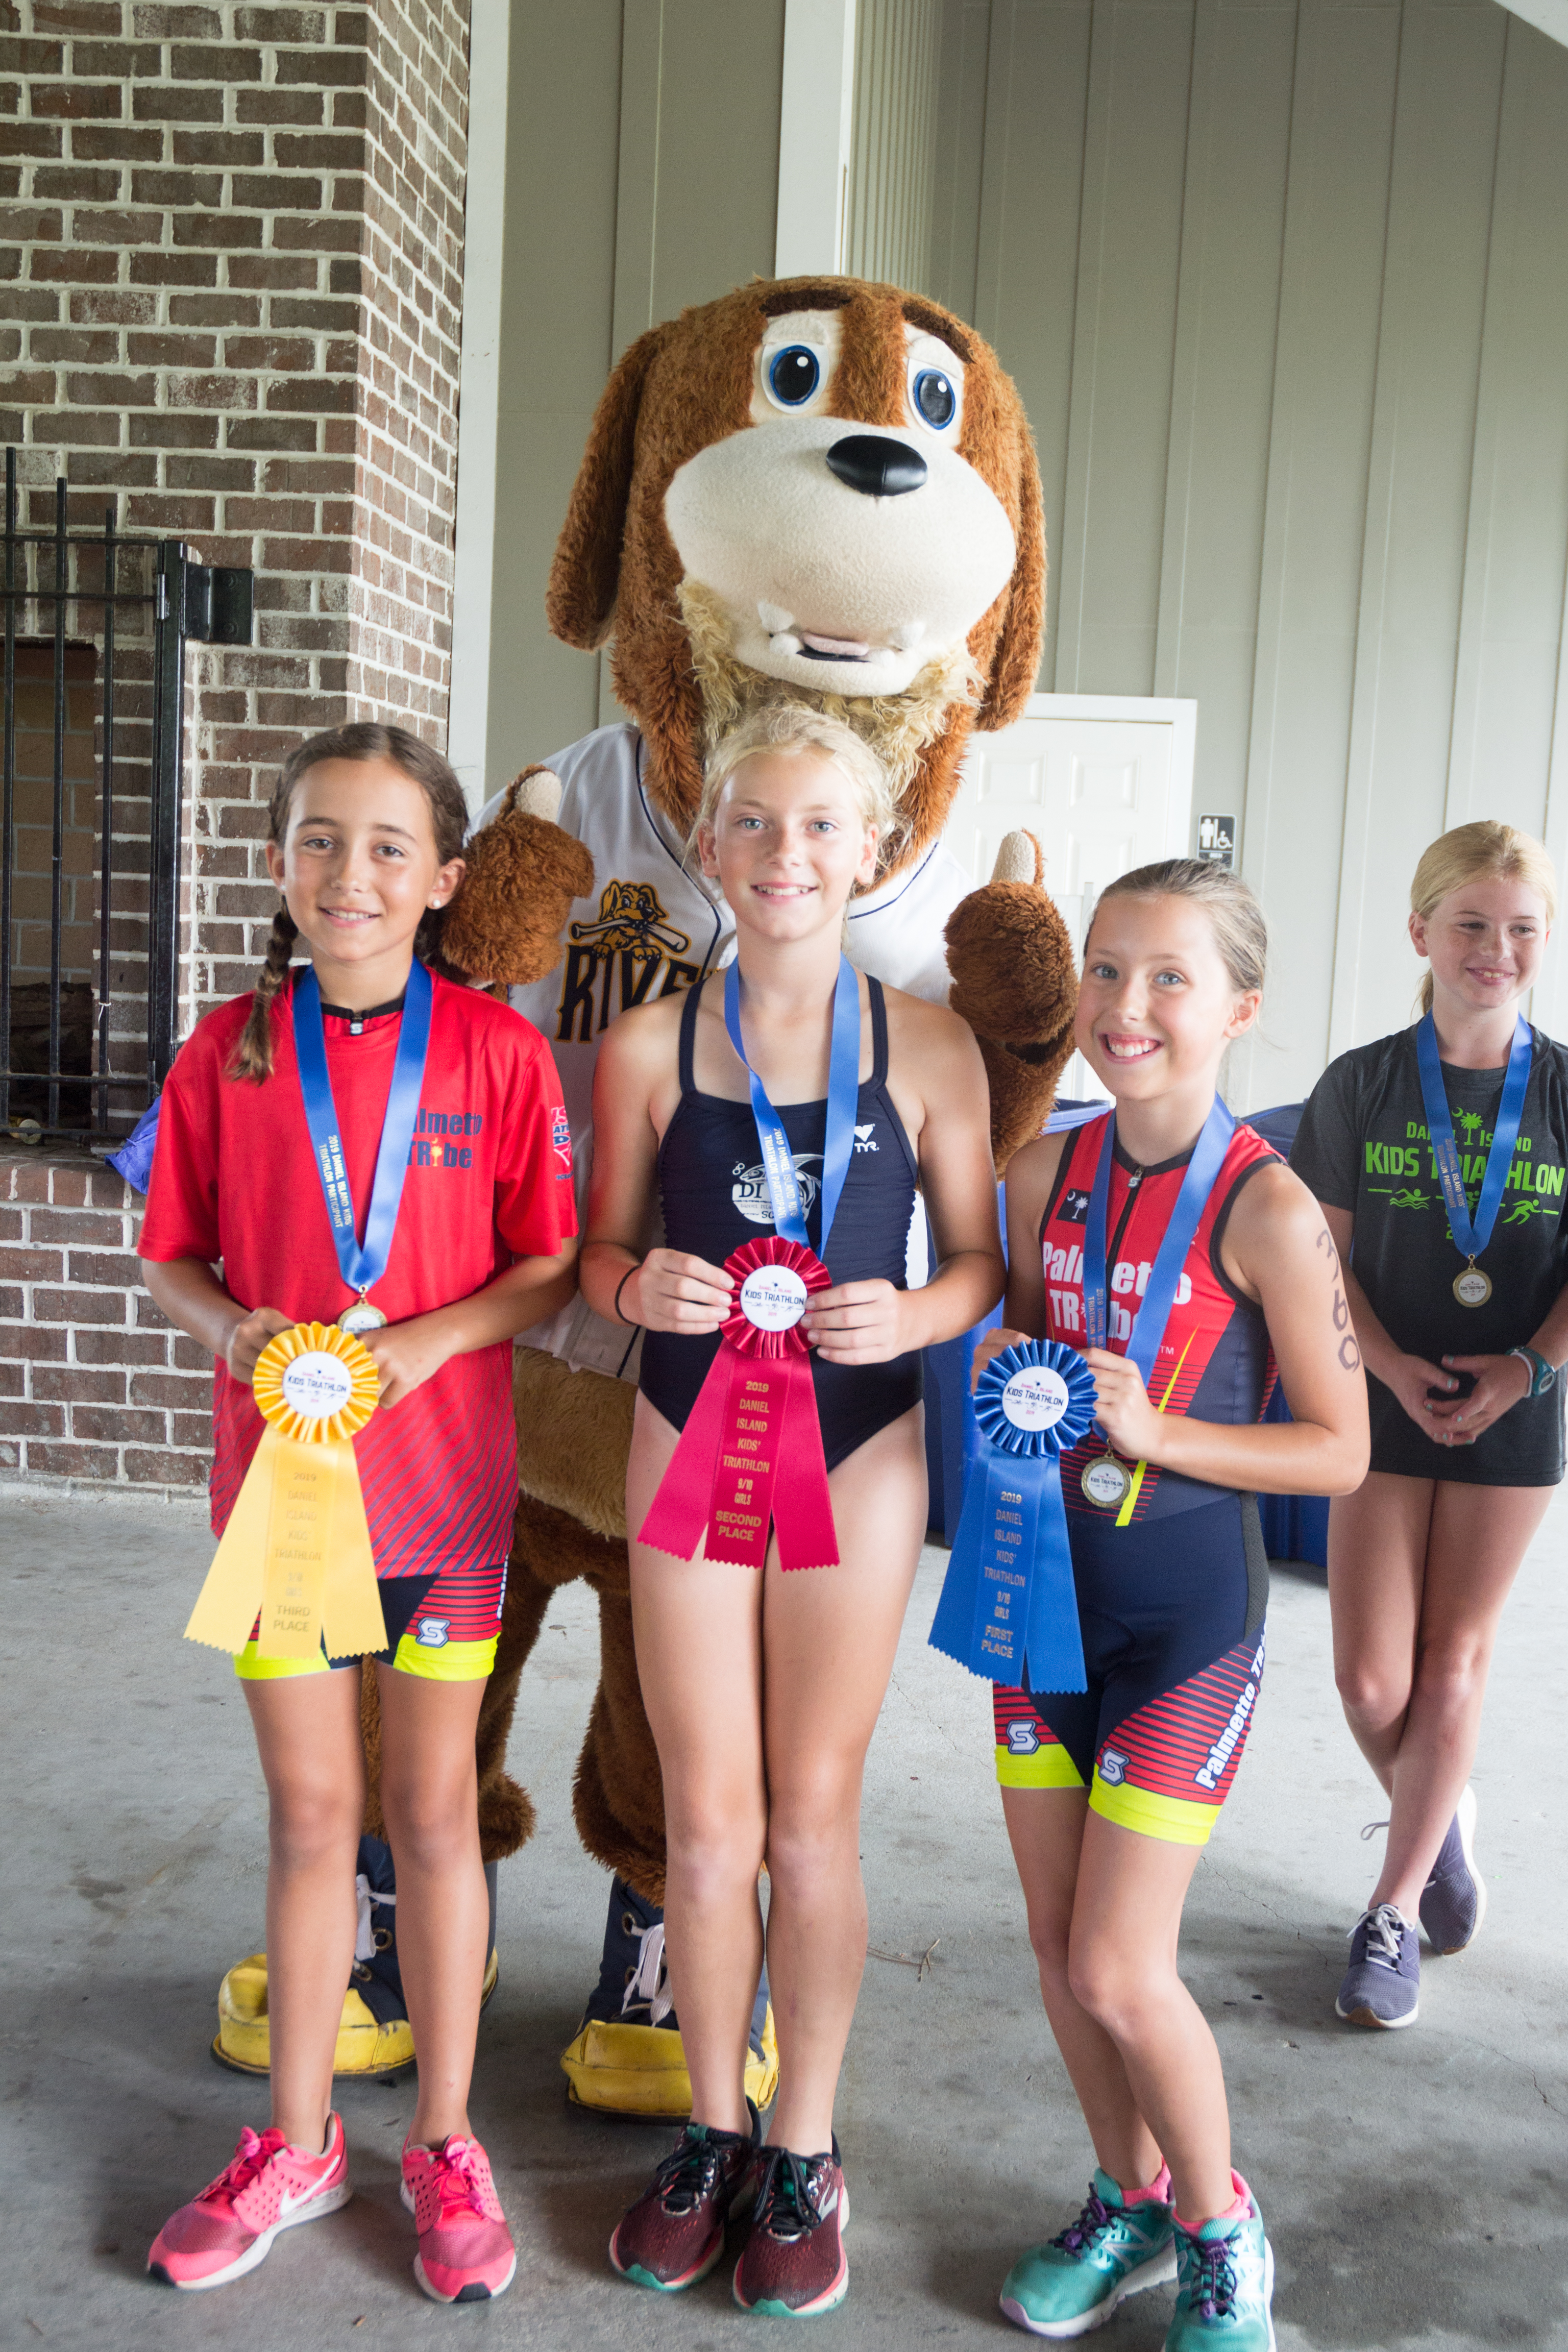 Winners in the 9-10 year-old girls' category (100 meter swim, 2.4 mile bike, ½ mile run): Ansley Kate Chapman (1st), Haley Franko (2nd) and Ginny Cason (3rd).